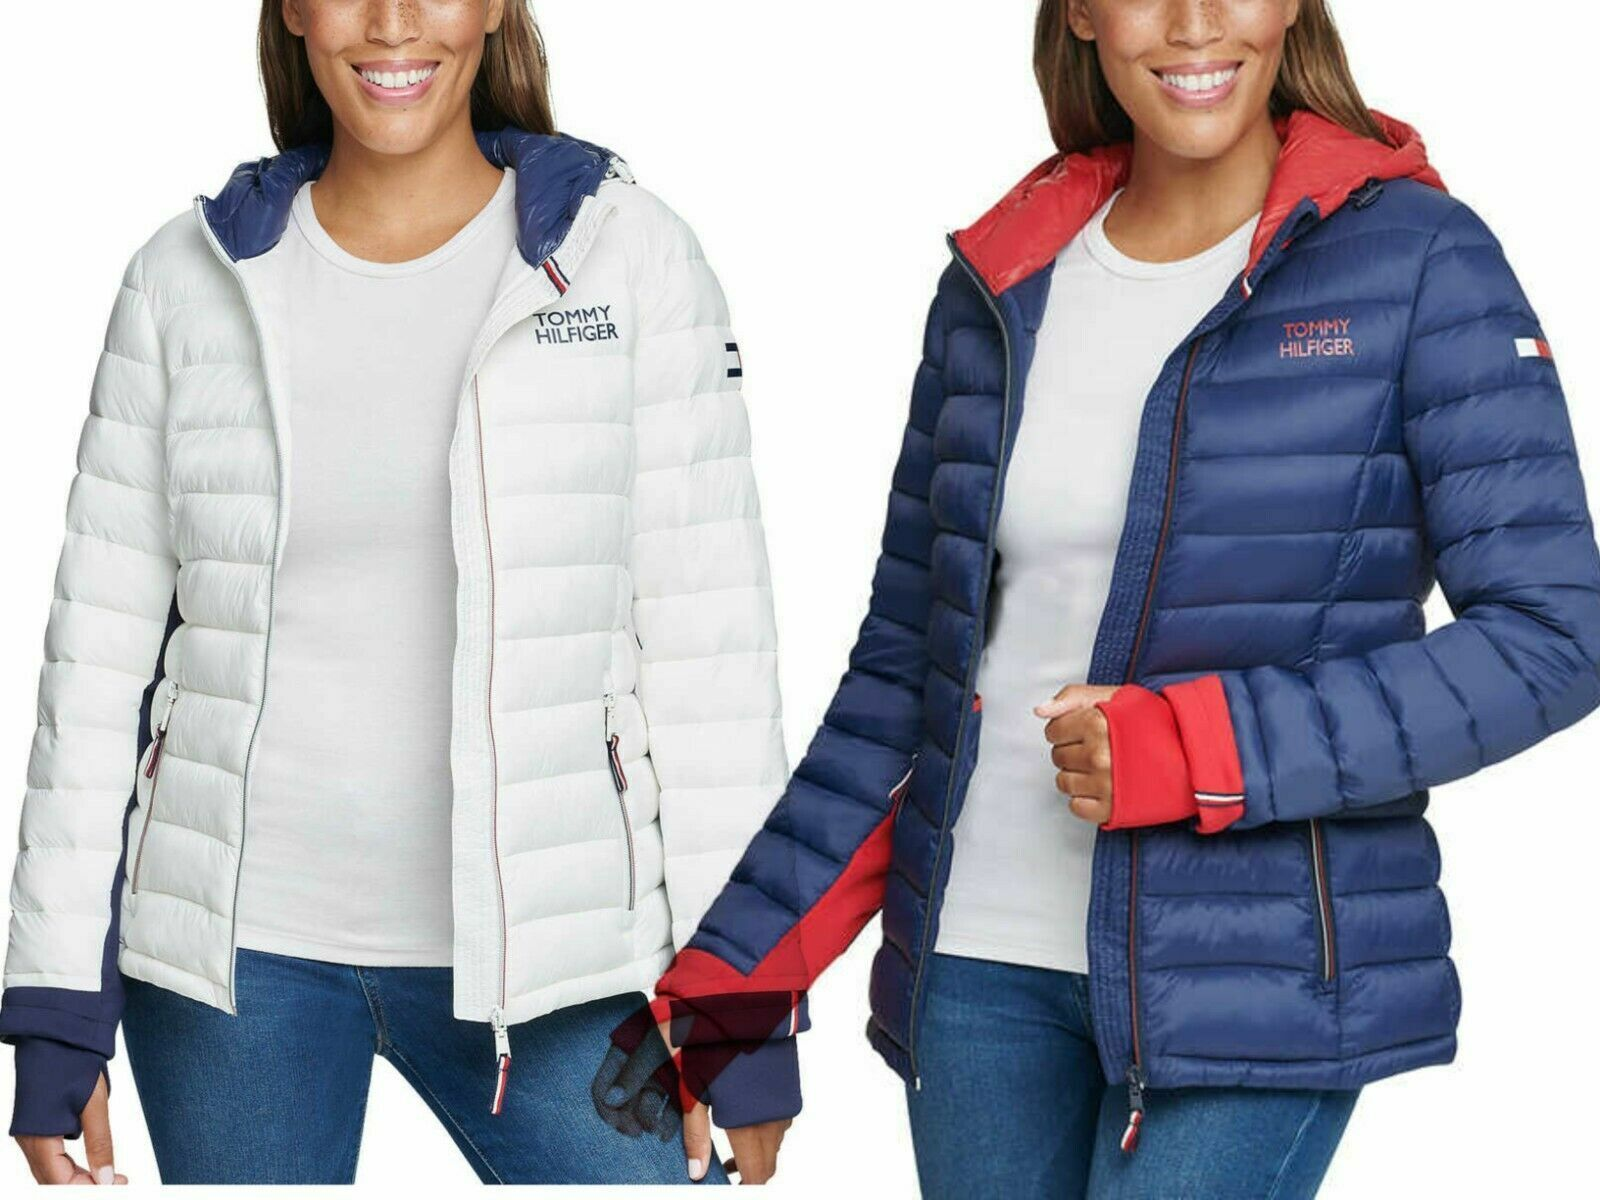 Tommy Hilfiger Ladies' Packable Jacket VARIETY Size & Color   Free Shipping L32